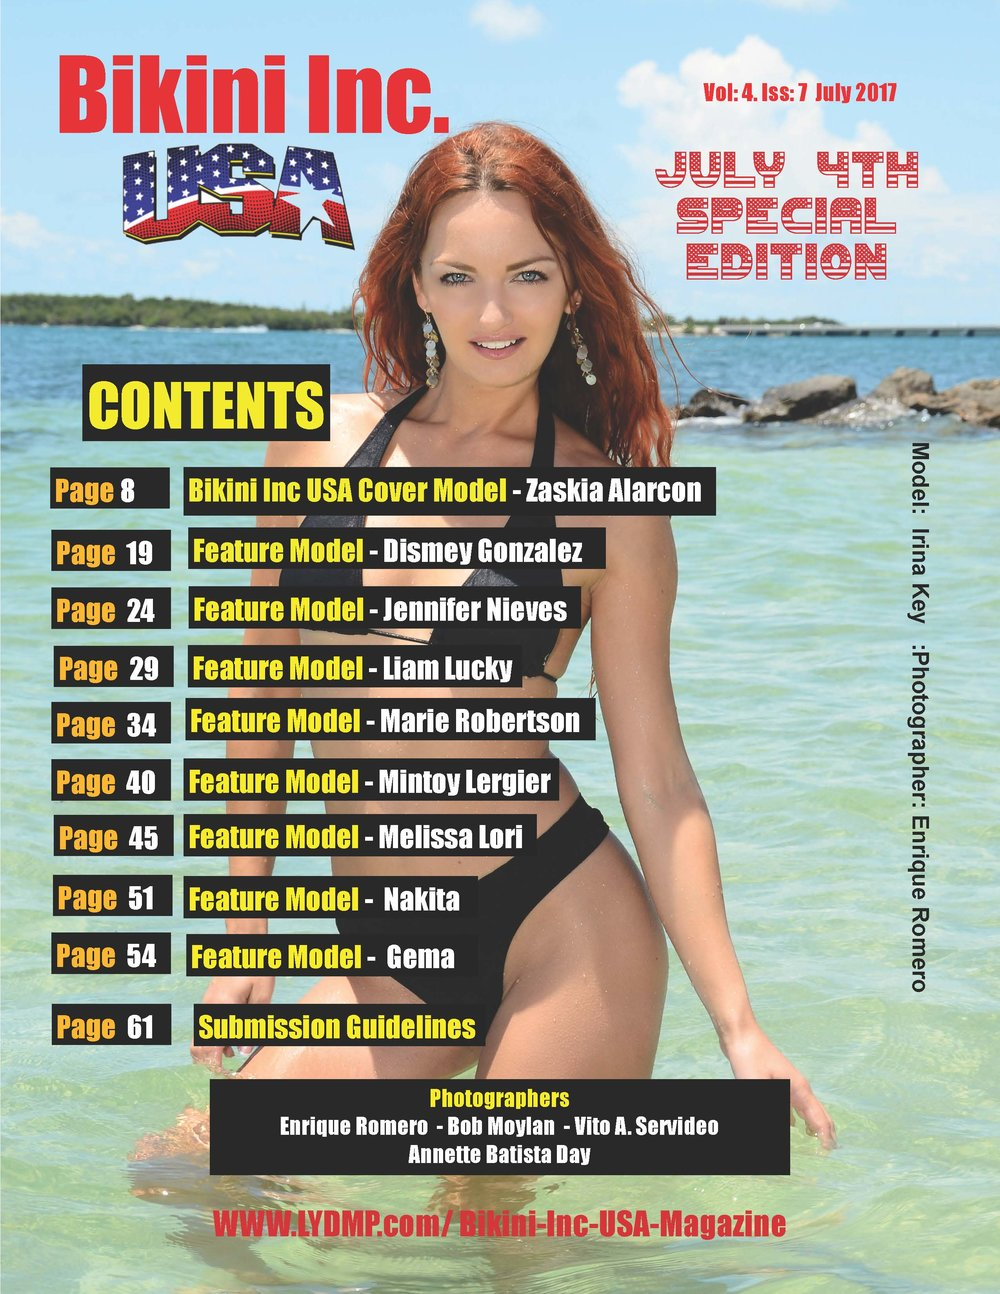 07-Bikini Inc USA Magazine - July 2017-IK-Content Page.jpg